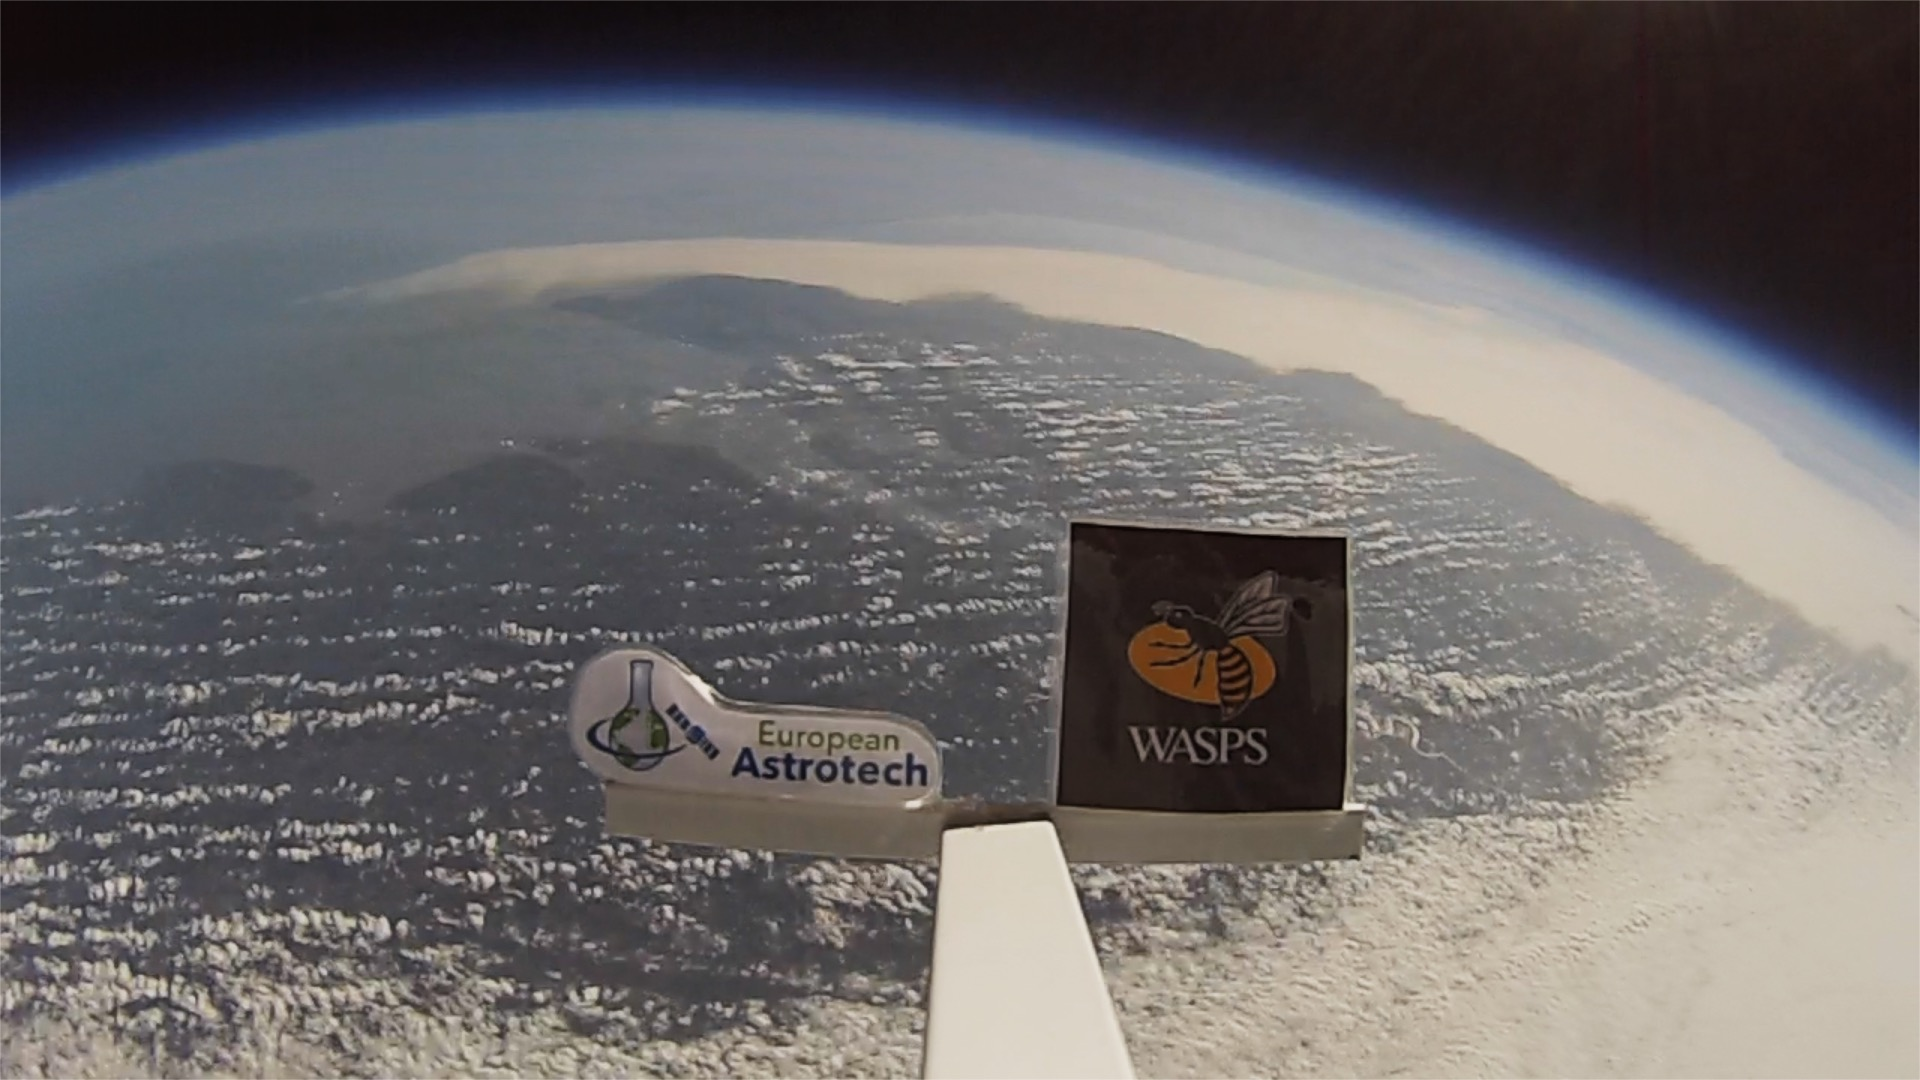 Space Balloons by EAL High Altitude Balloon Image 4